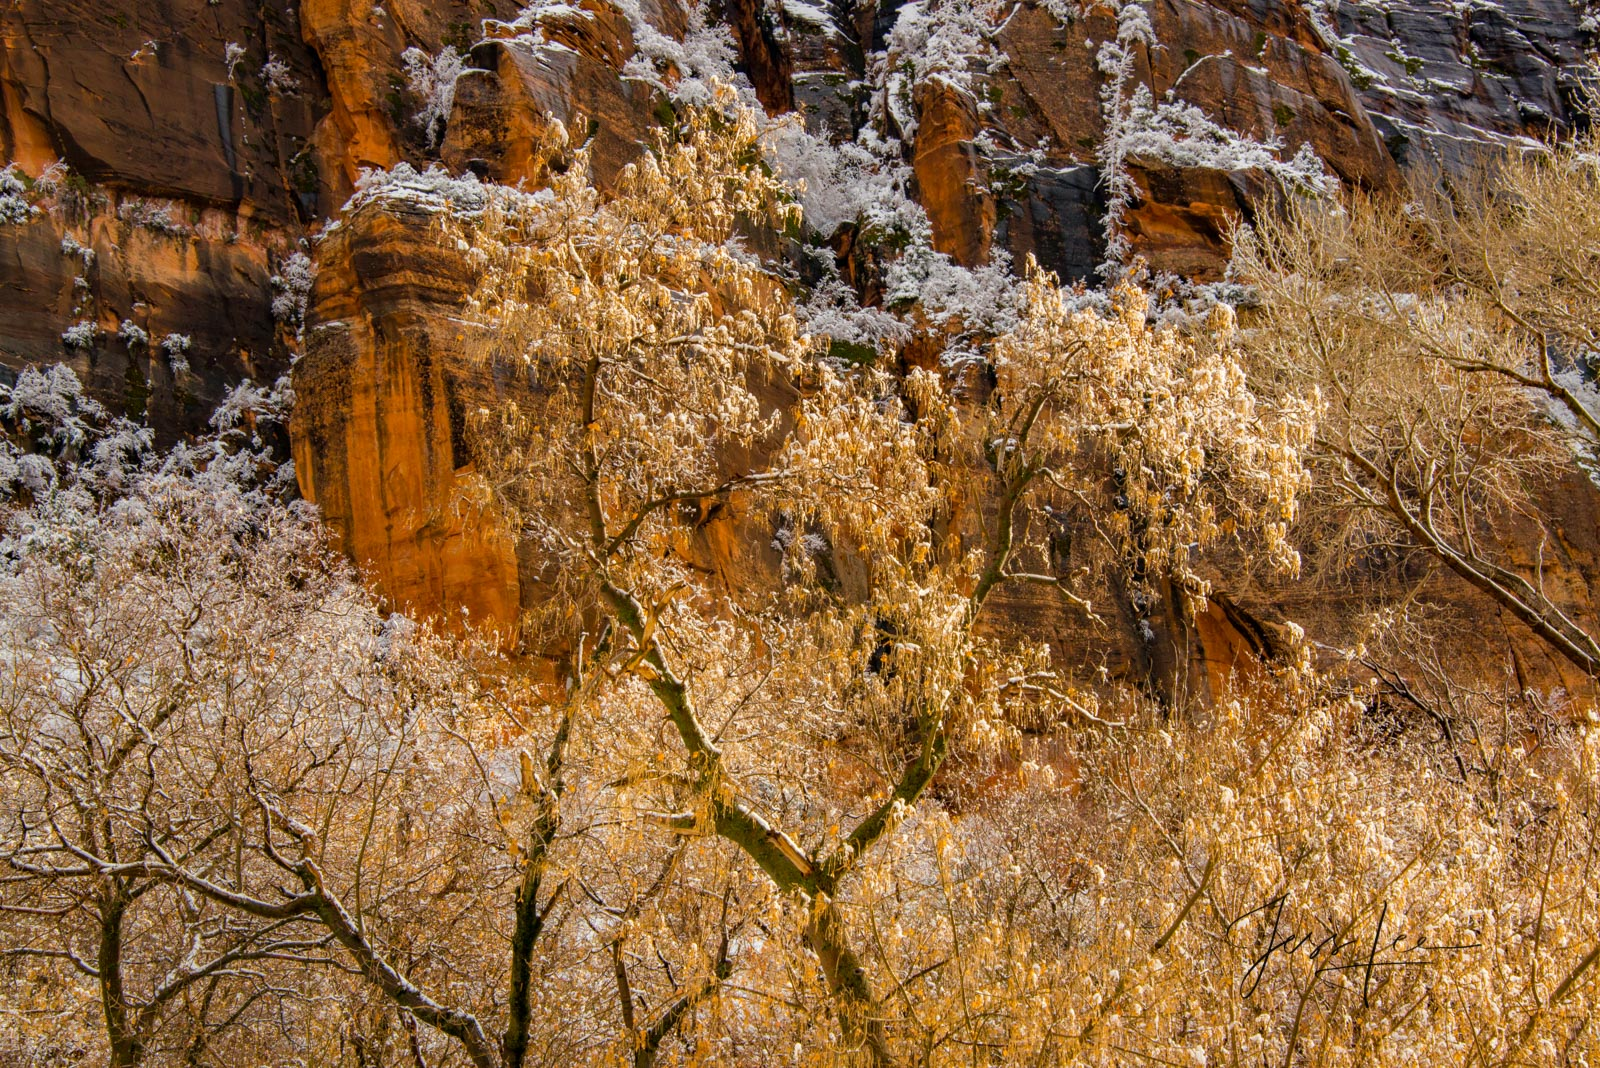 Autumn leaves with snow in Zion